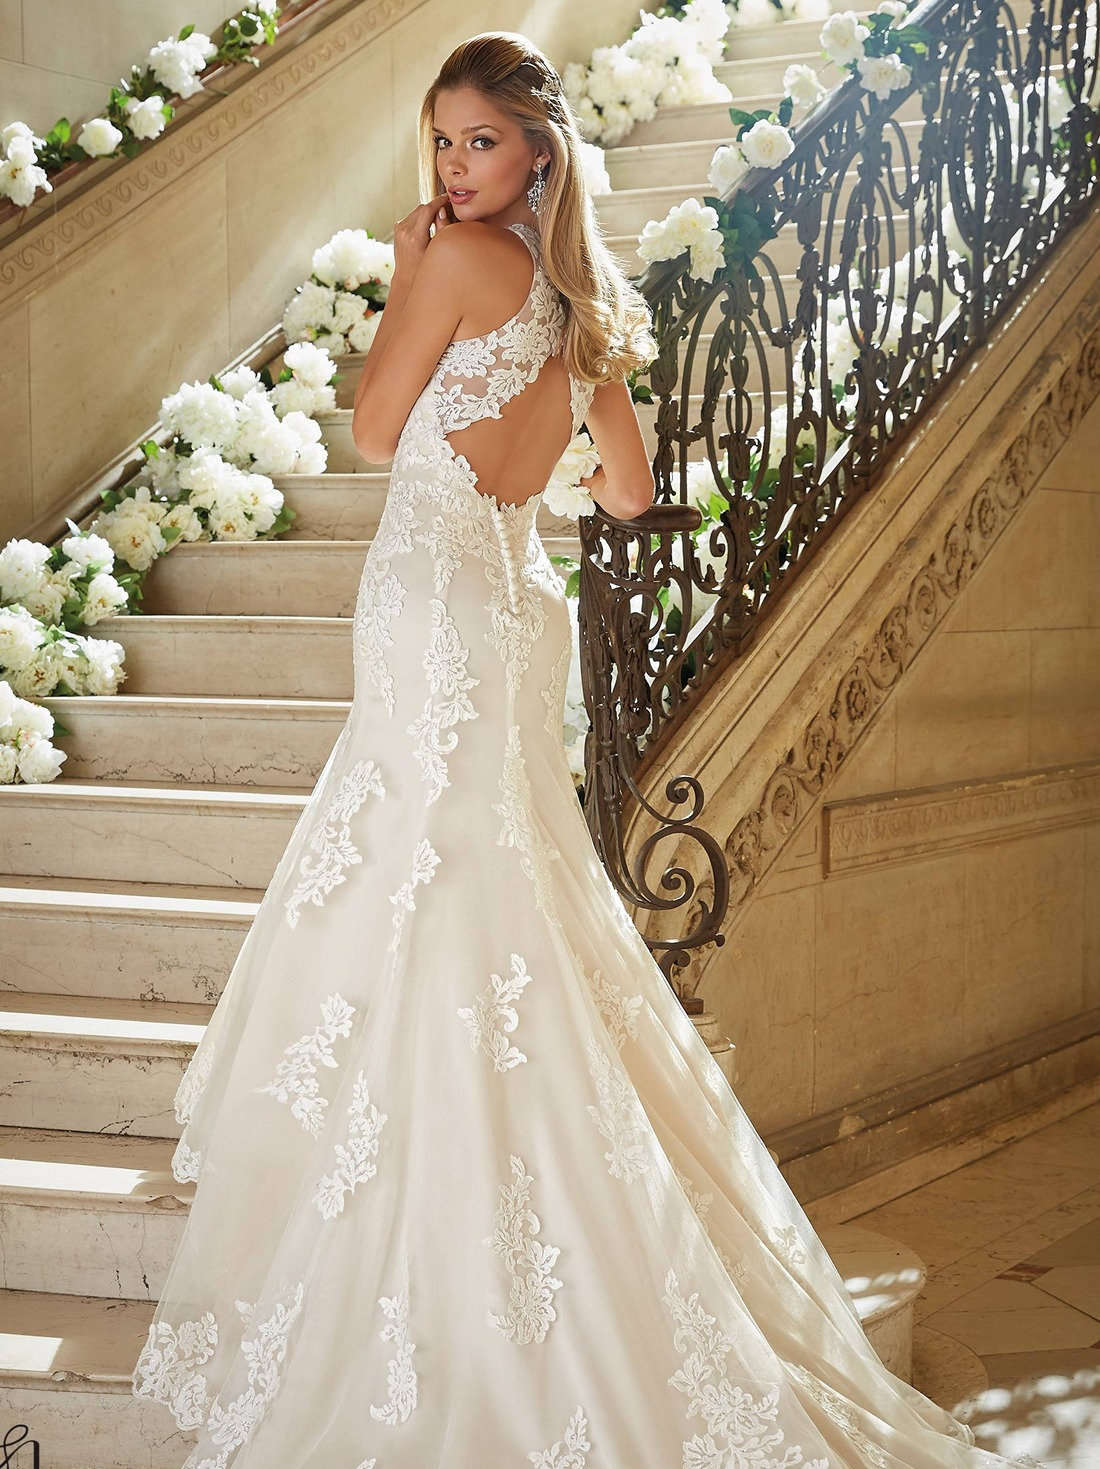 Brides of somerset wedding dresses cape town premier for Wedding dresses for bridesmaid